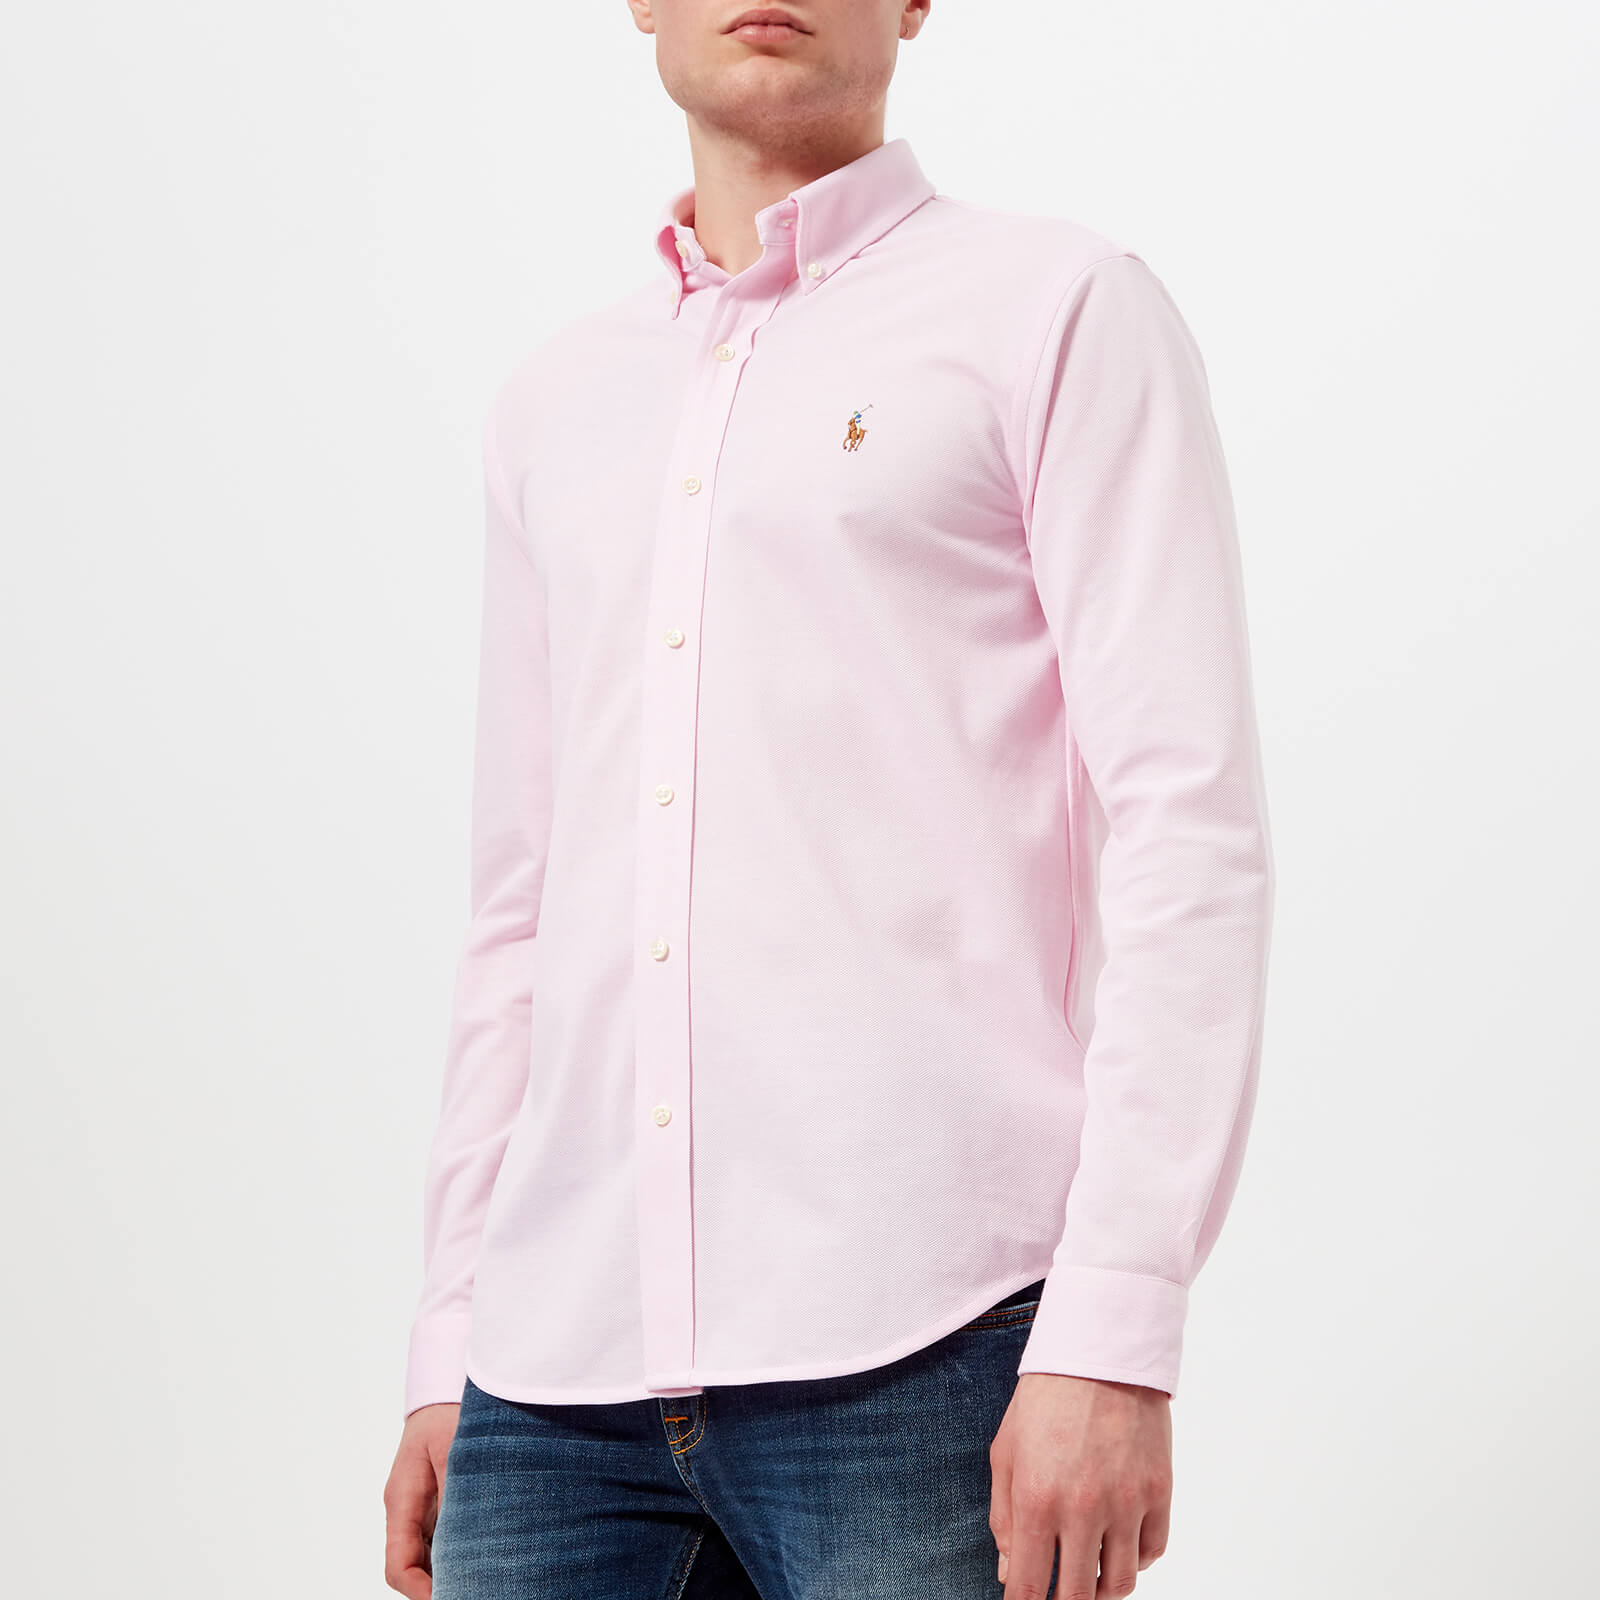 42eec03a0 Polo Ralph Lauren Men s Long Sleeve Oxford Pique Shirt - Carmel Pink White  - Free UK Delivery over £50